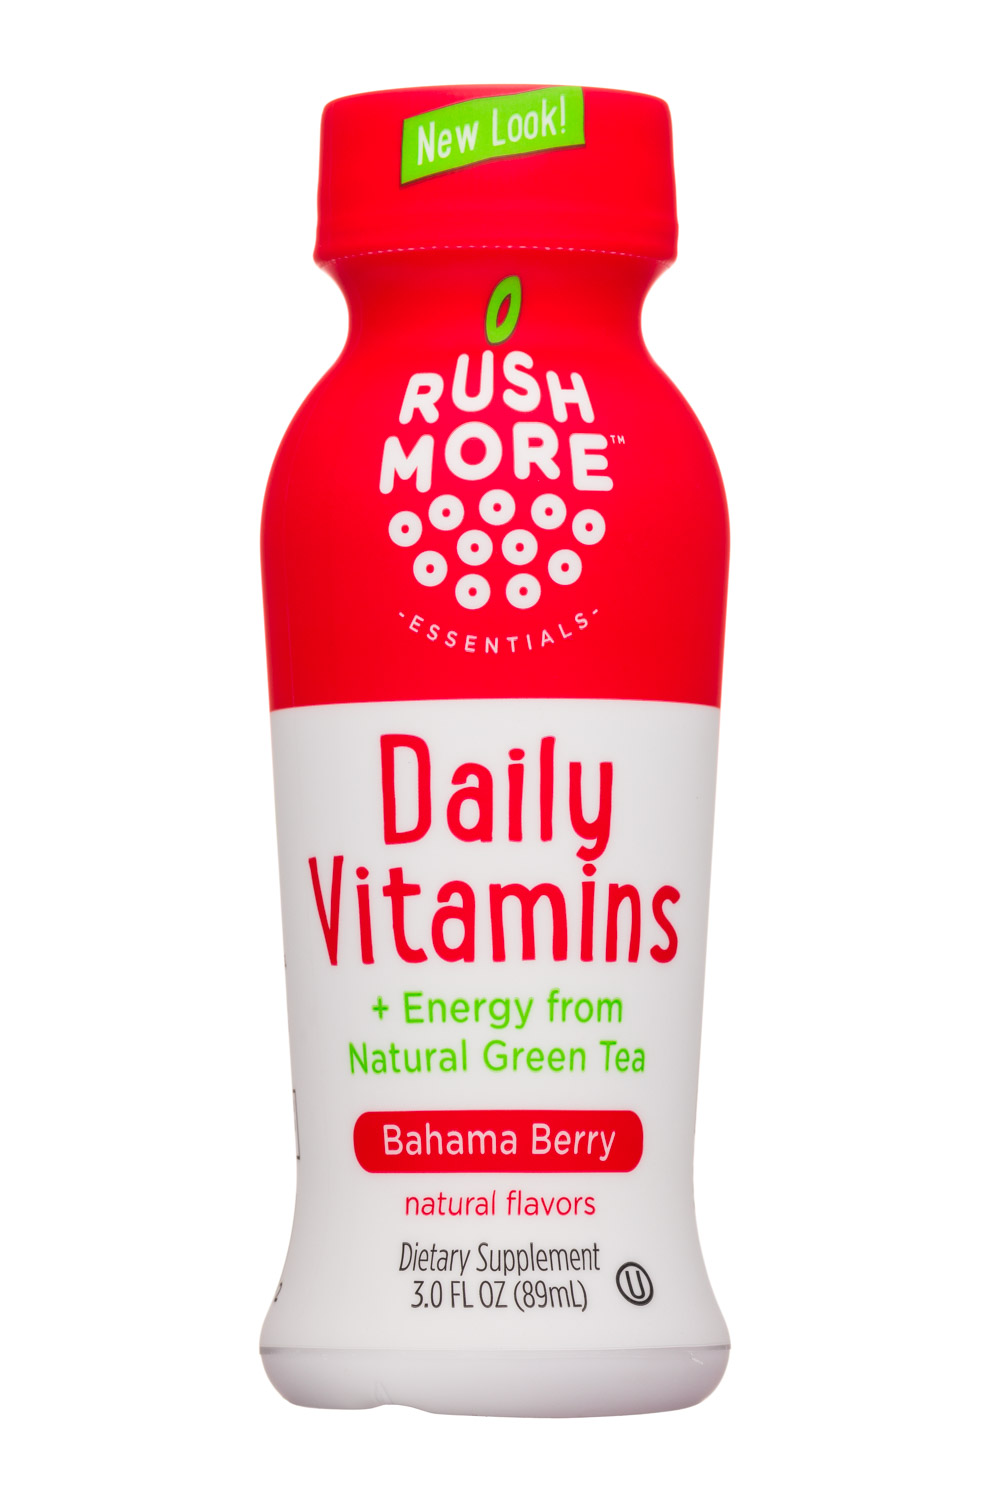 Daily Vitamins - Bahama Berry